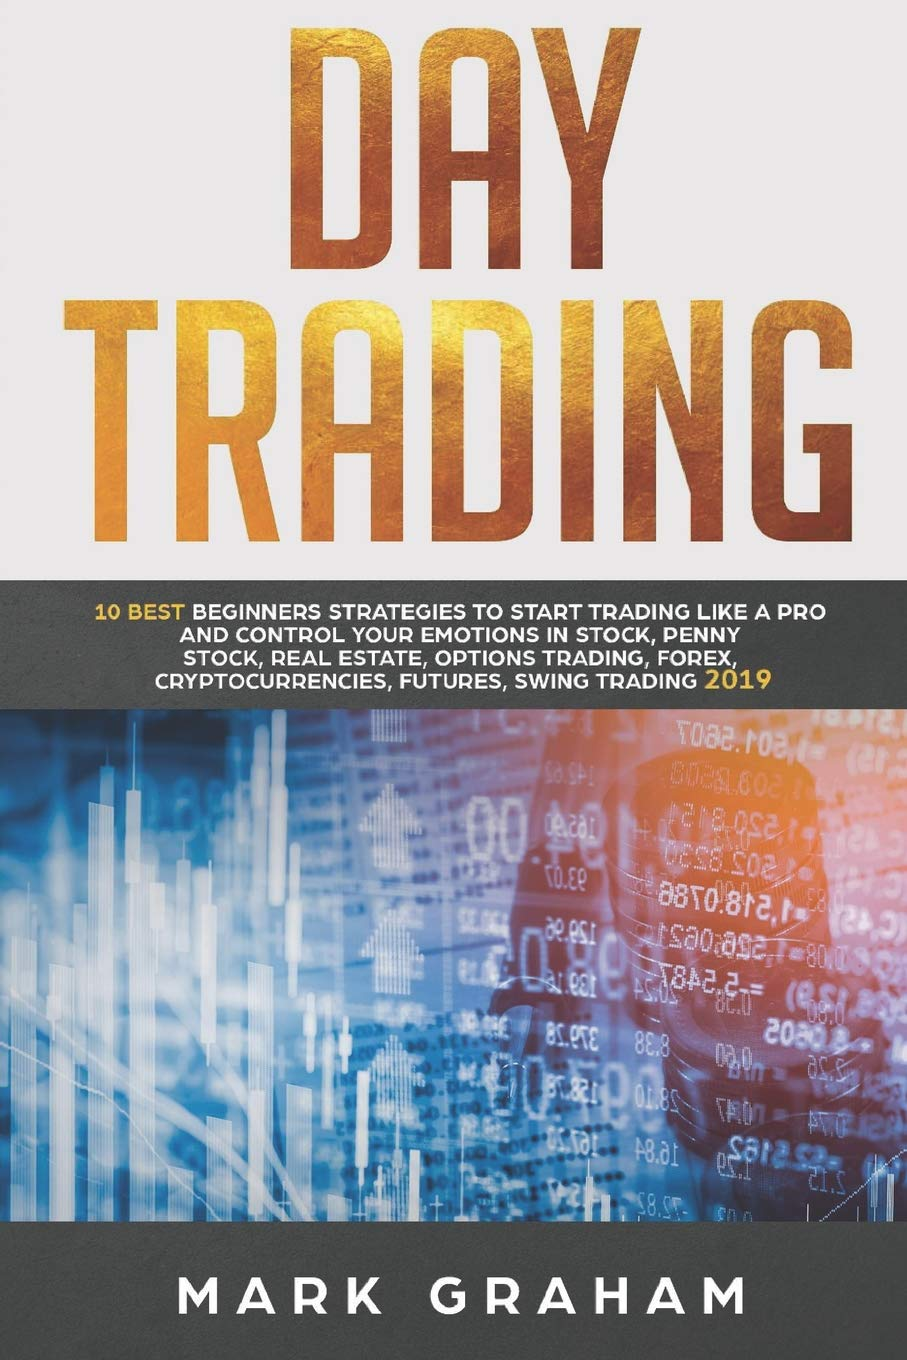 Best Stocks For Swing Trading 2020 Day Trading: 10 Best Beginners Strategies to Start Trading Like A